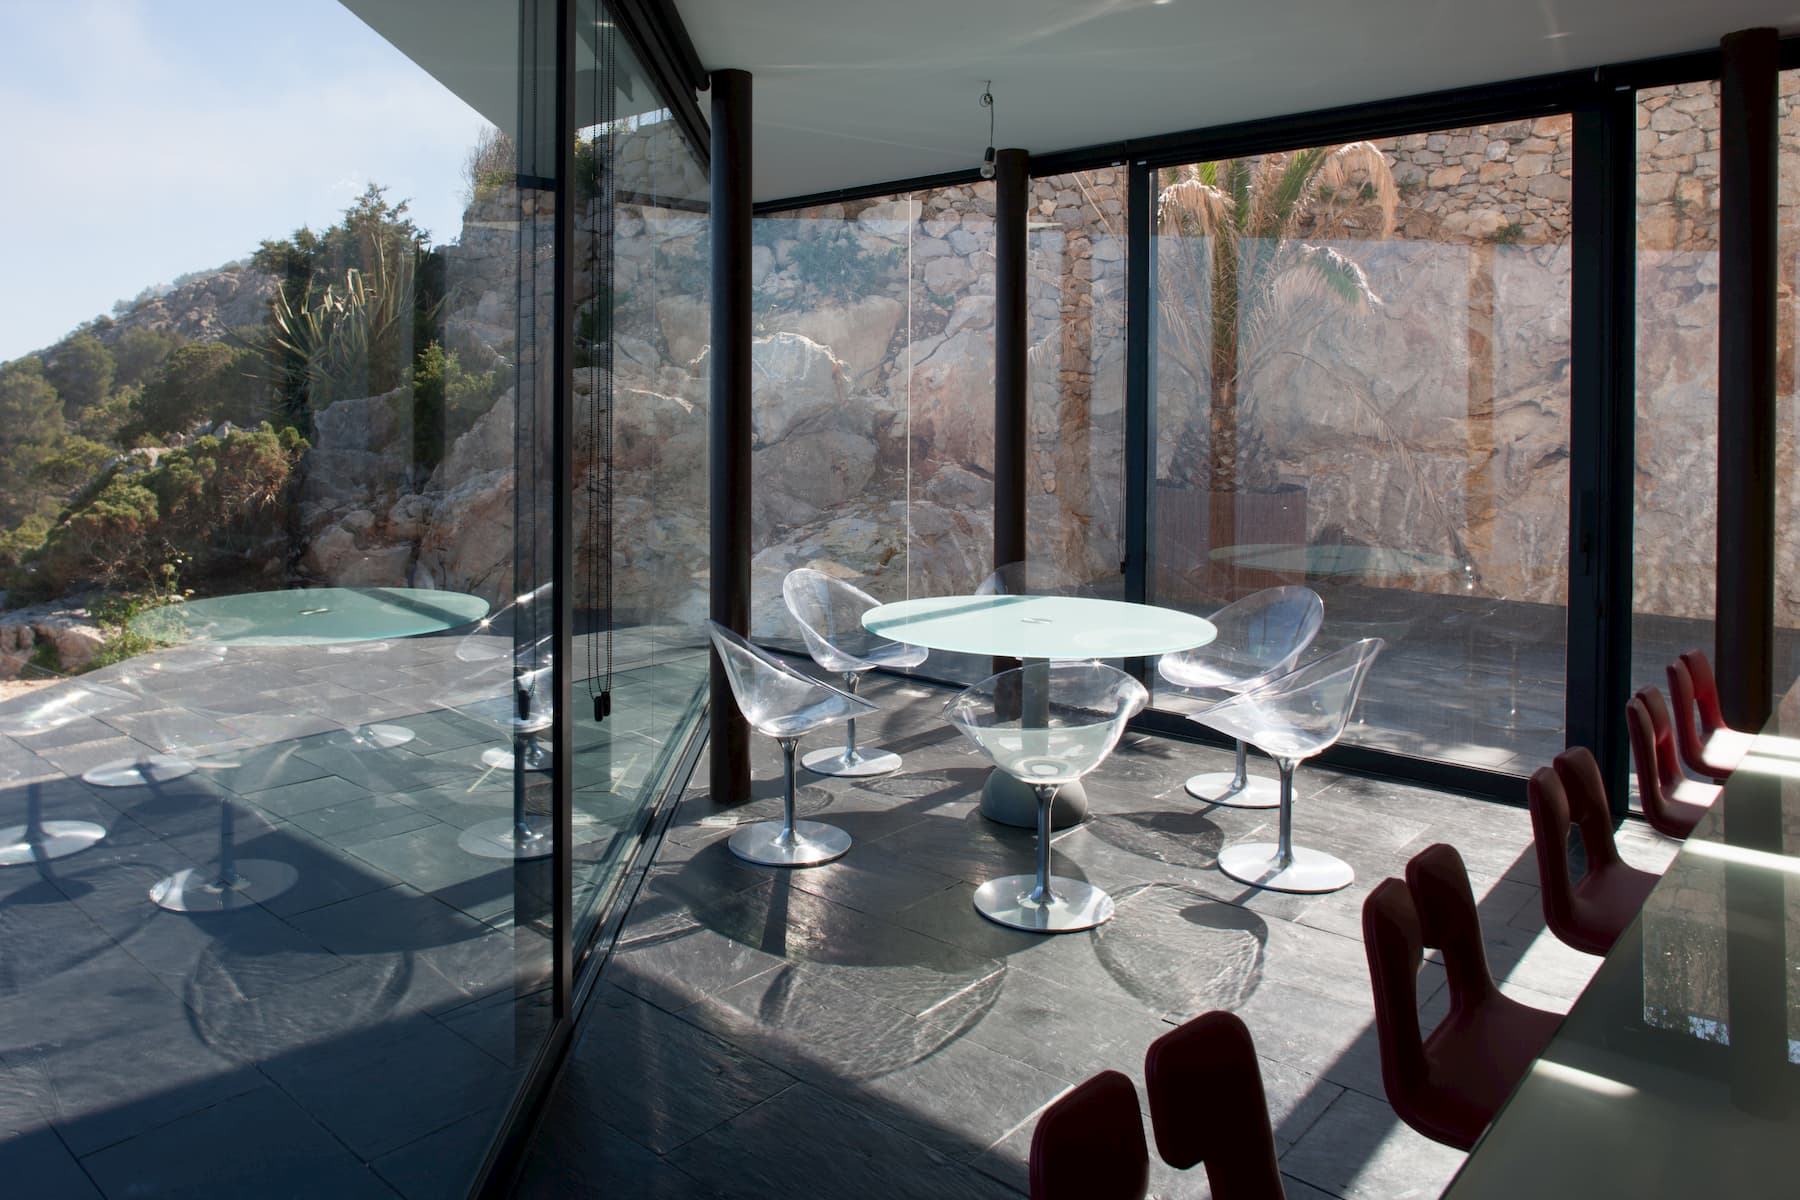 A dining room with gray tile floor, glass walls, and transparent chairs looks over a patio with a stone wall behind it